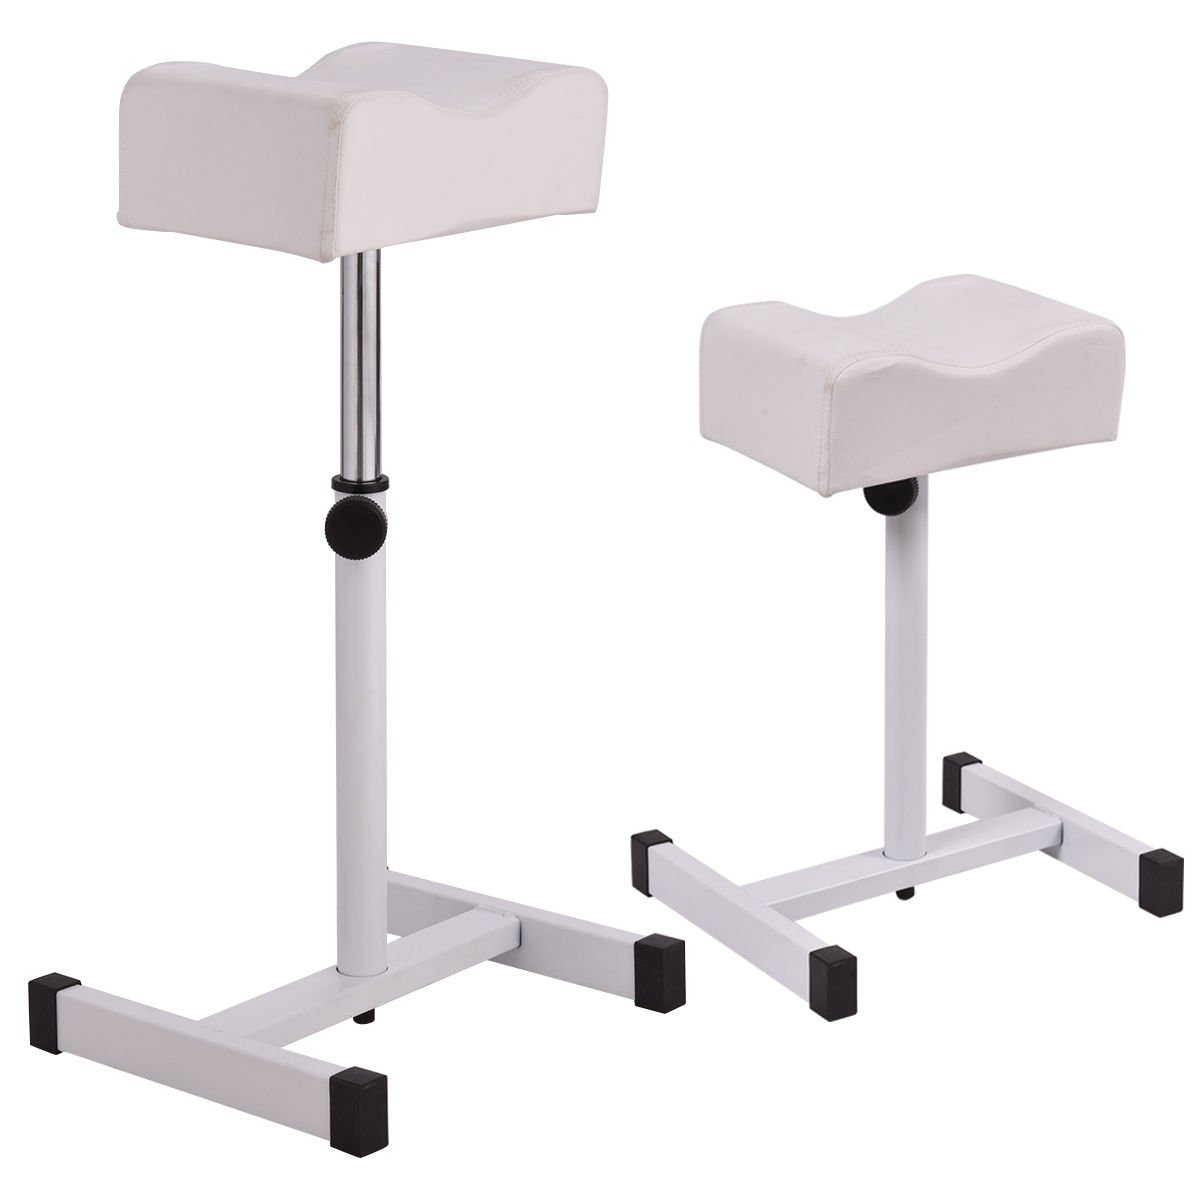 Simply Silver - Adjustable Pedicure - White Adjustable Pedicure Manicure Technician Nail Footrest Salon Spa Equipment by Simply Silver (Image #1)